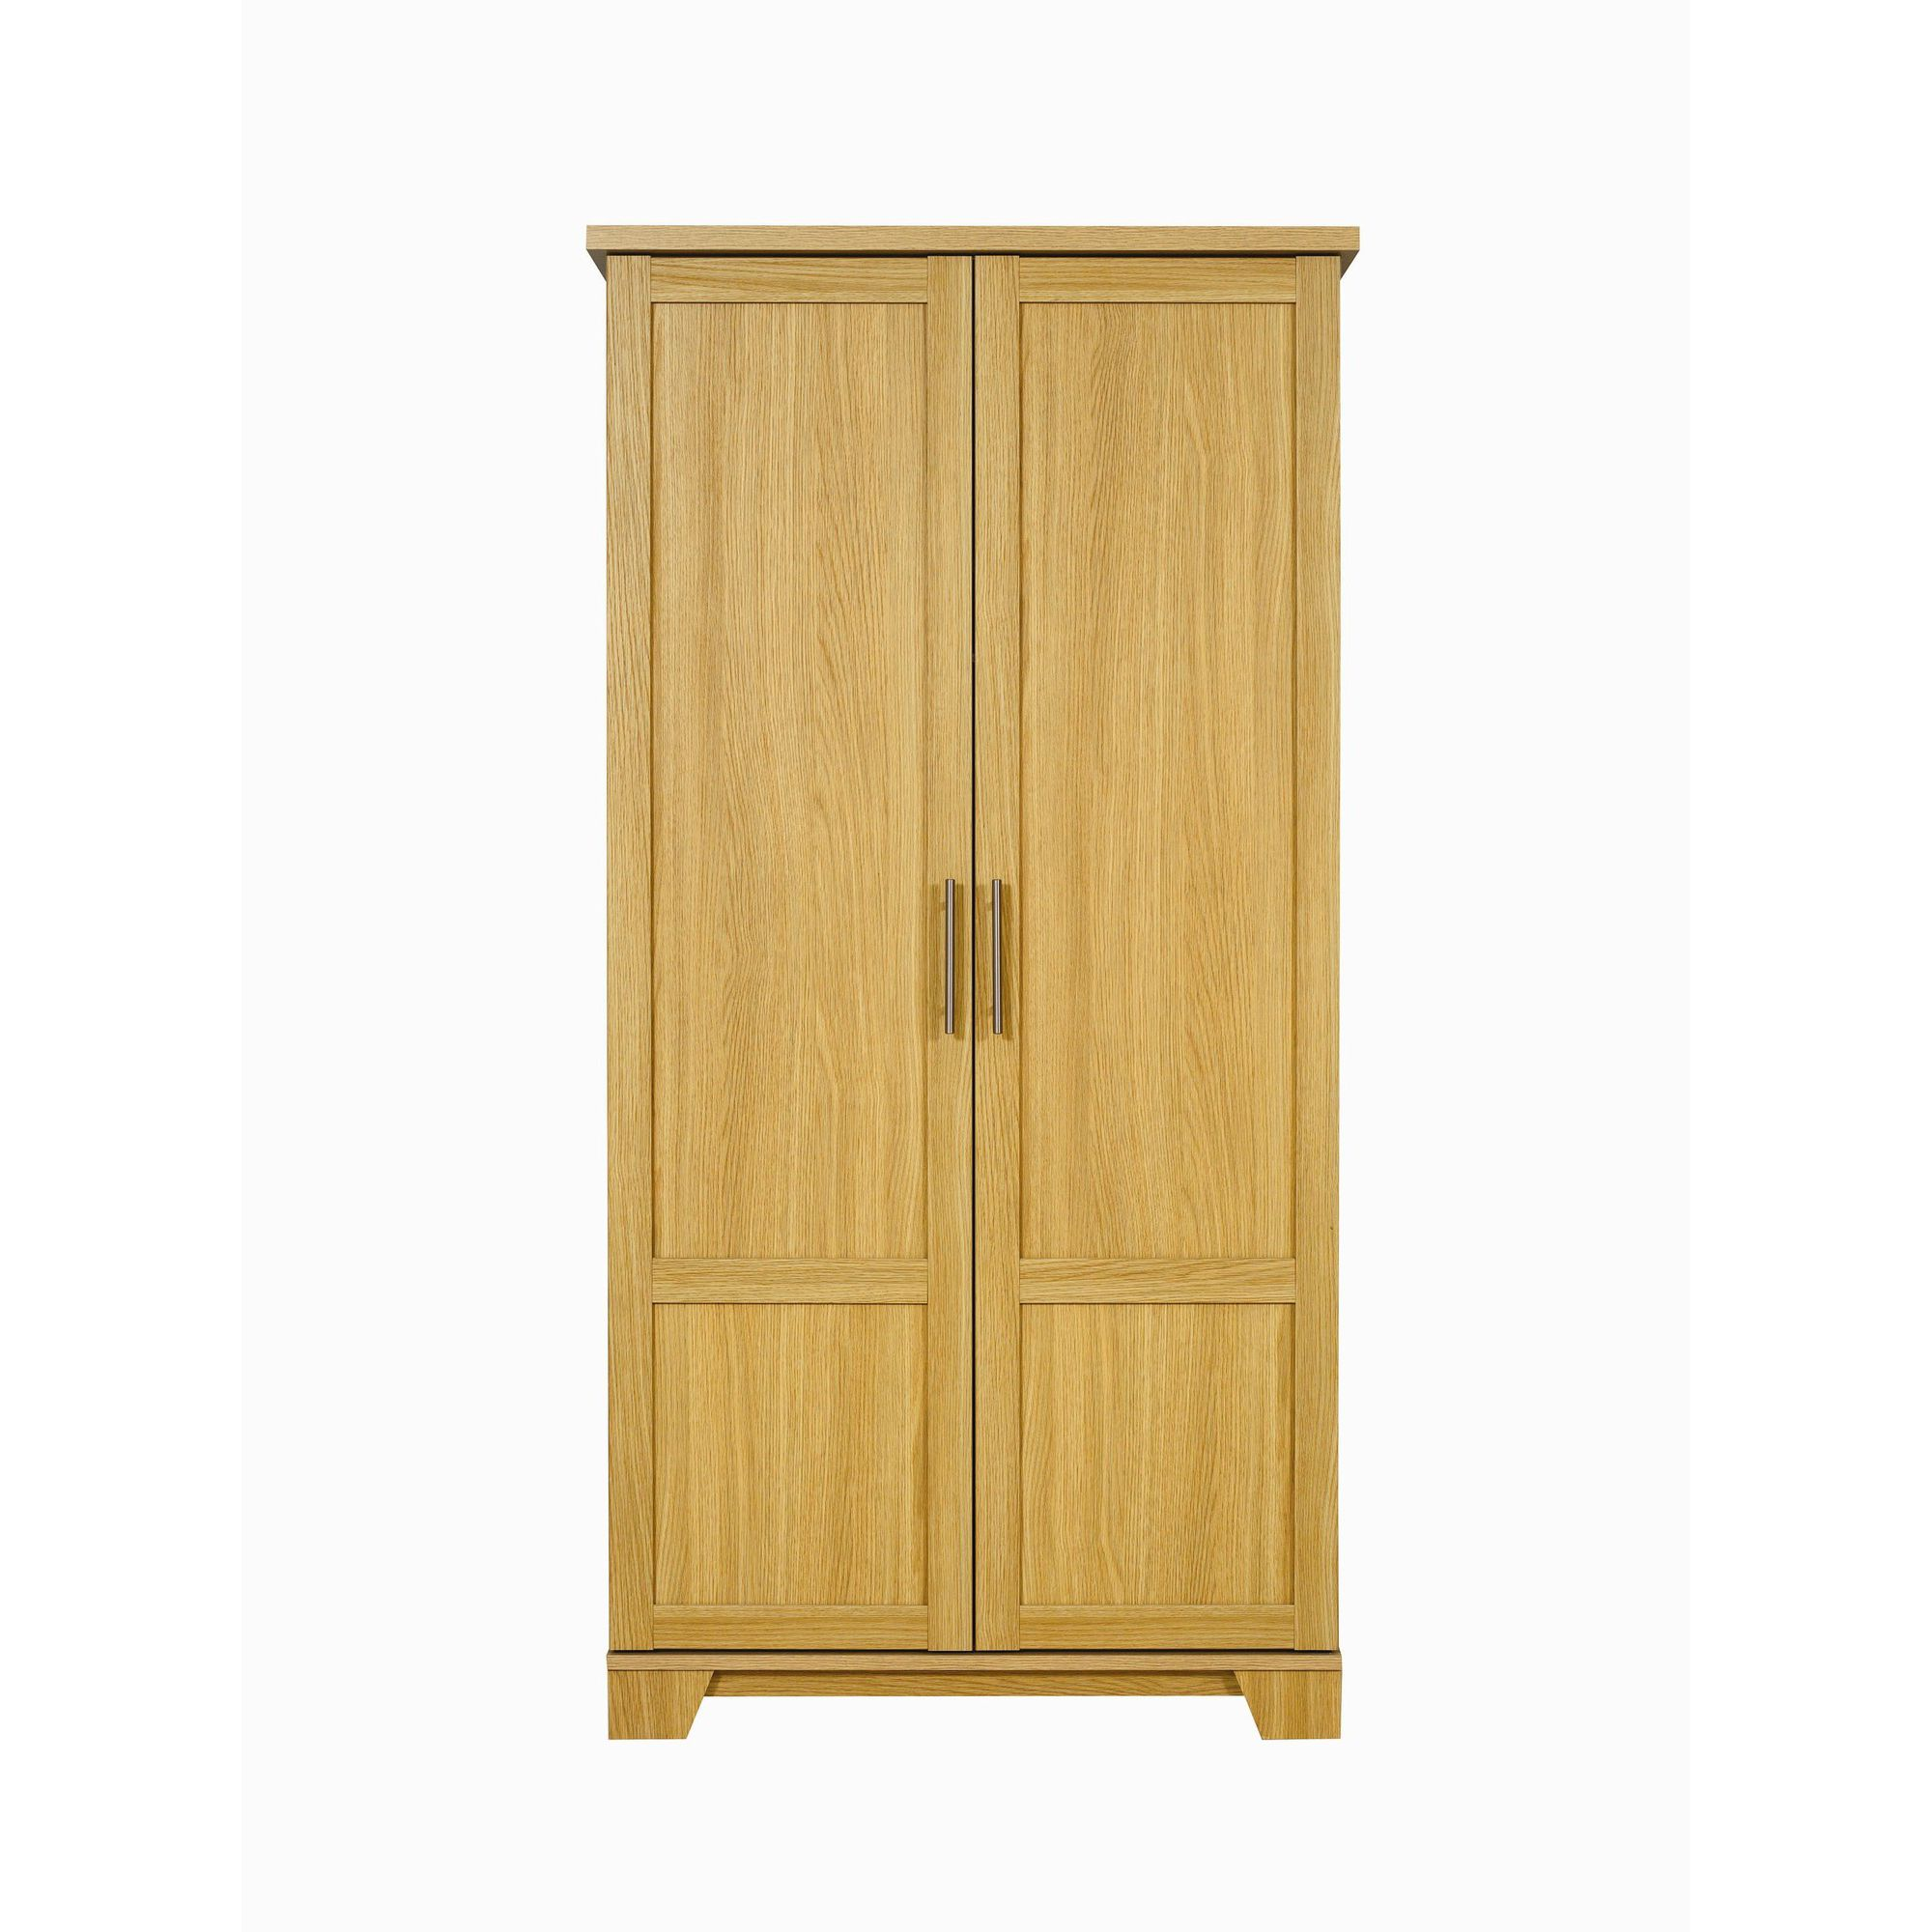 Caxton Melody 2 Door Short Height Wardrobe in Natural Oak at Tesco Direct